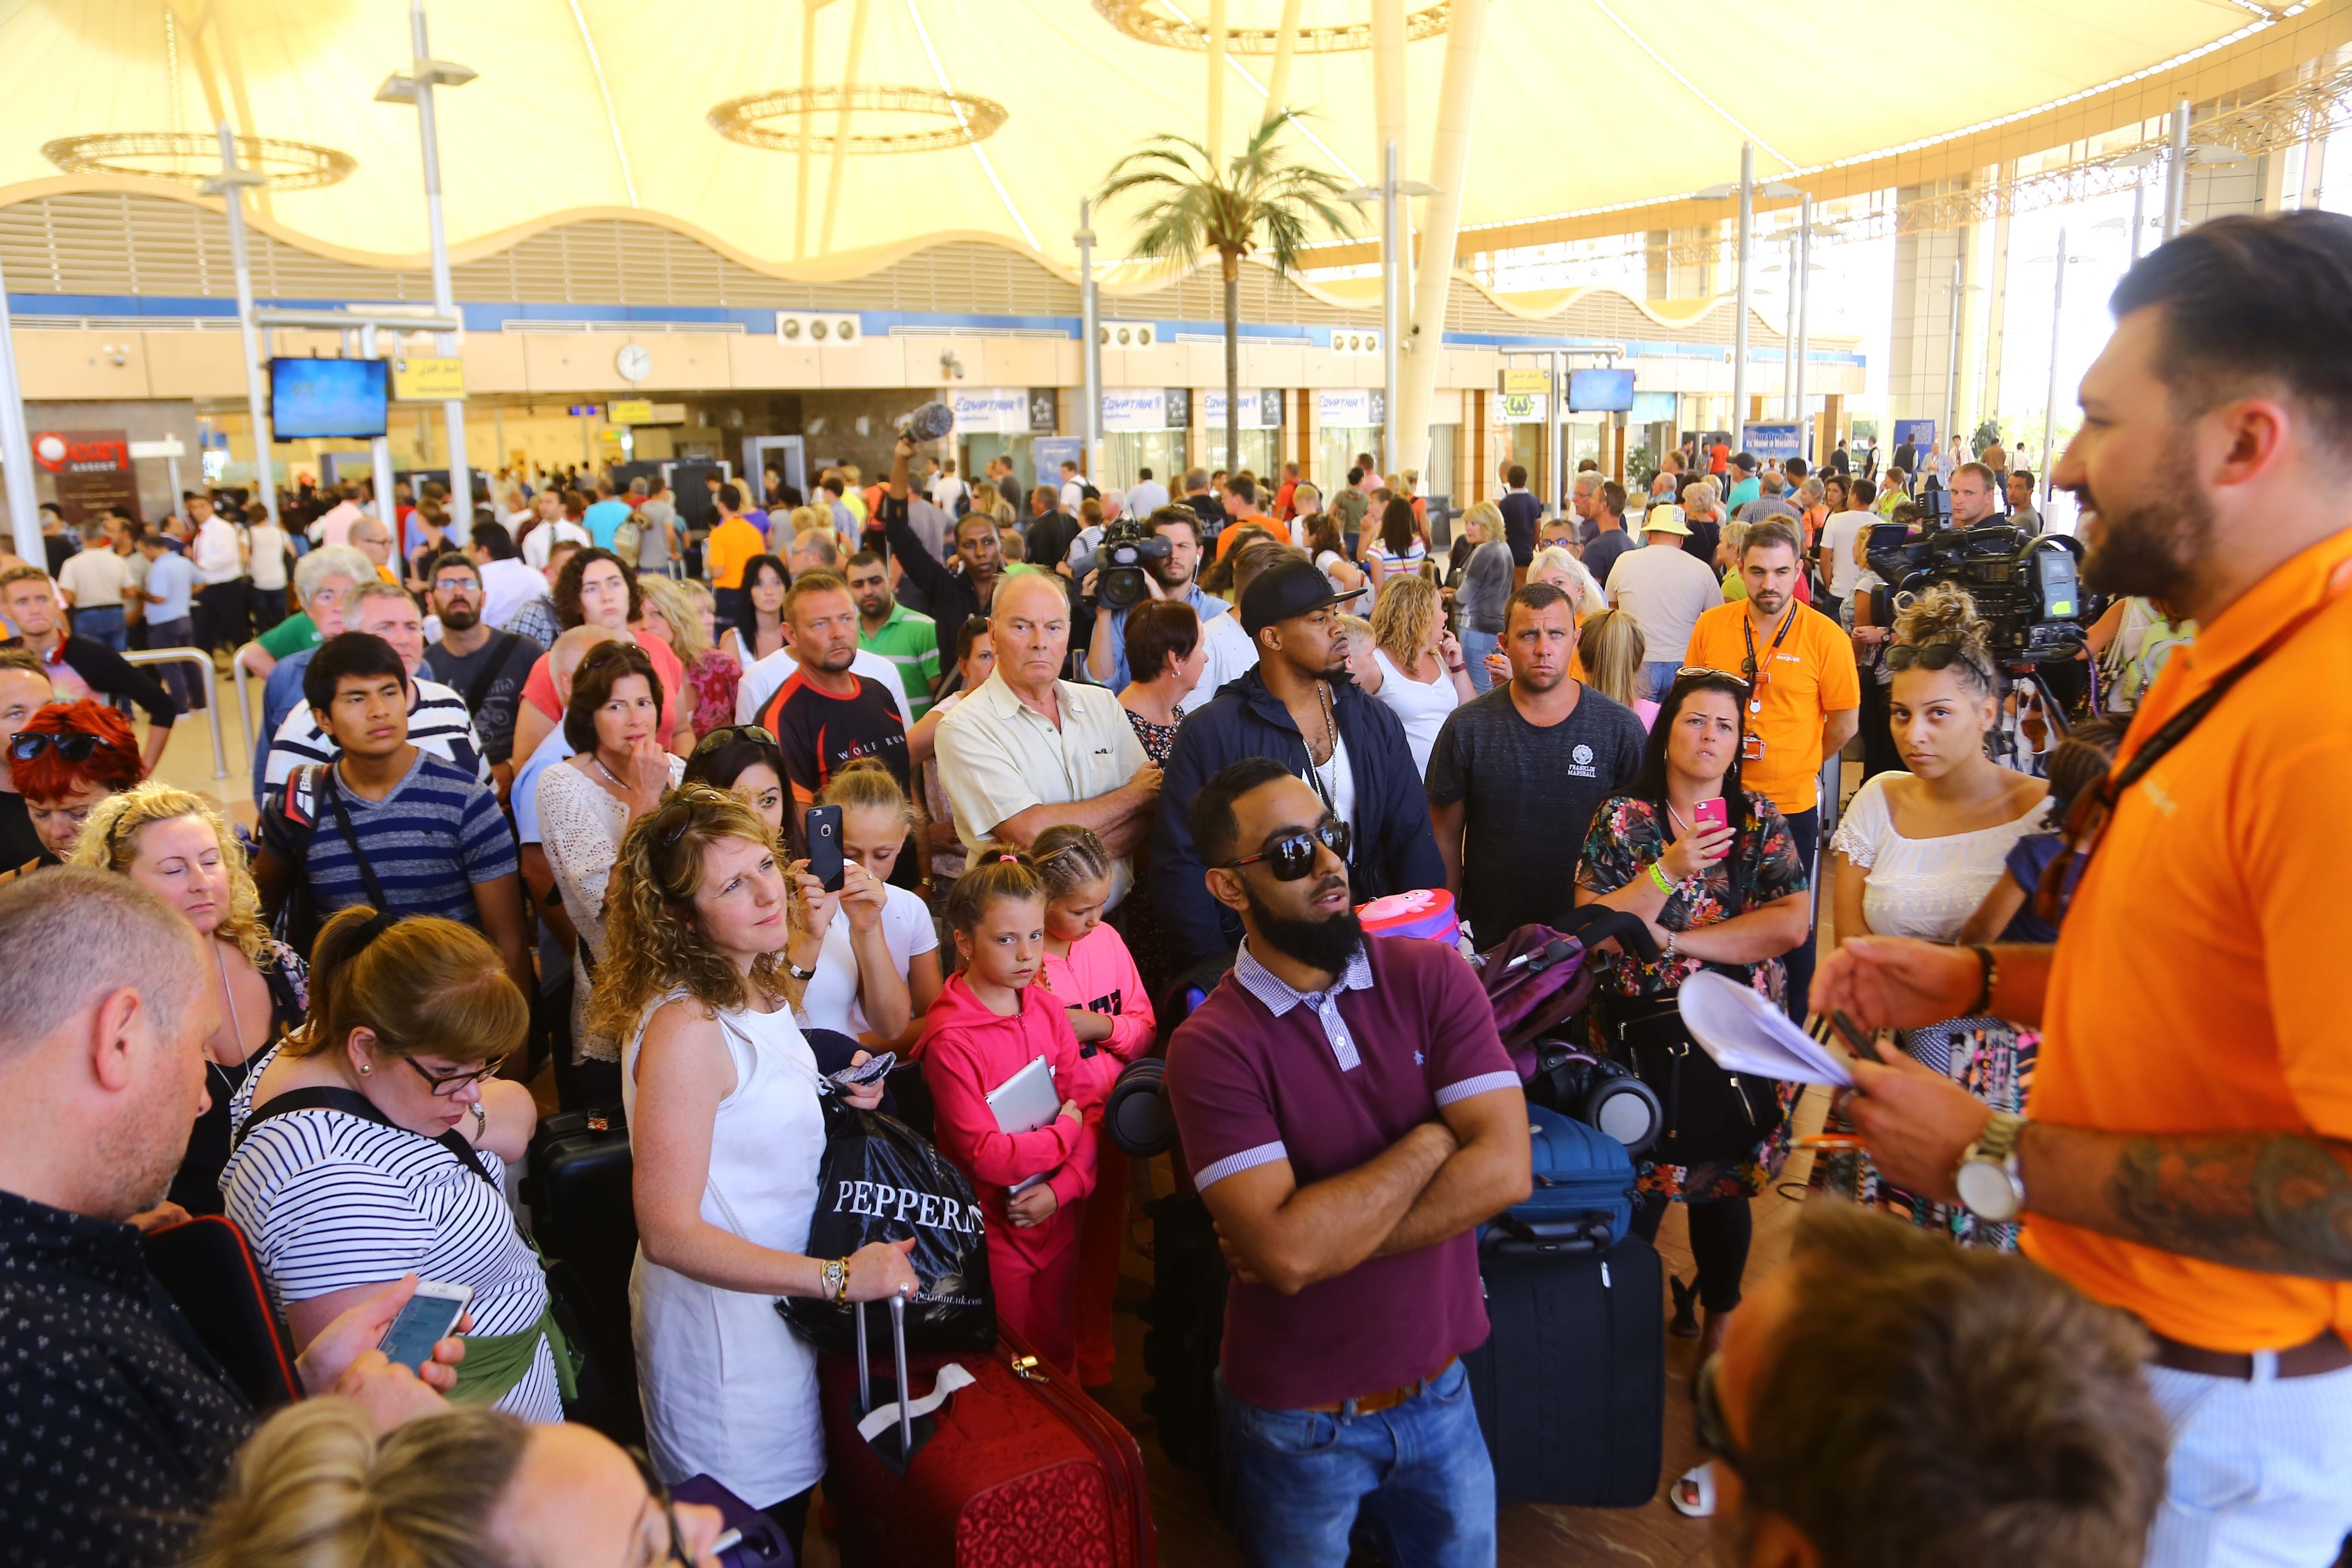 The evacuation begins of British tourists from Egypt's Sharm el-Sheikh Airport on Nov. 6, 2015. They had been stranded for security reasons since the crash of Metrojet Flight 9268 on Oct. 31